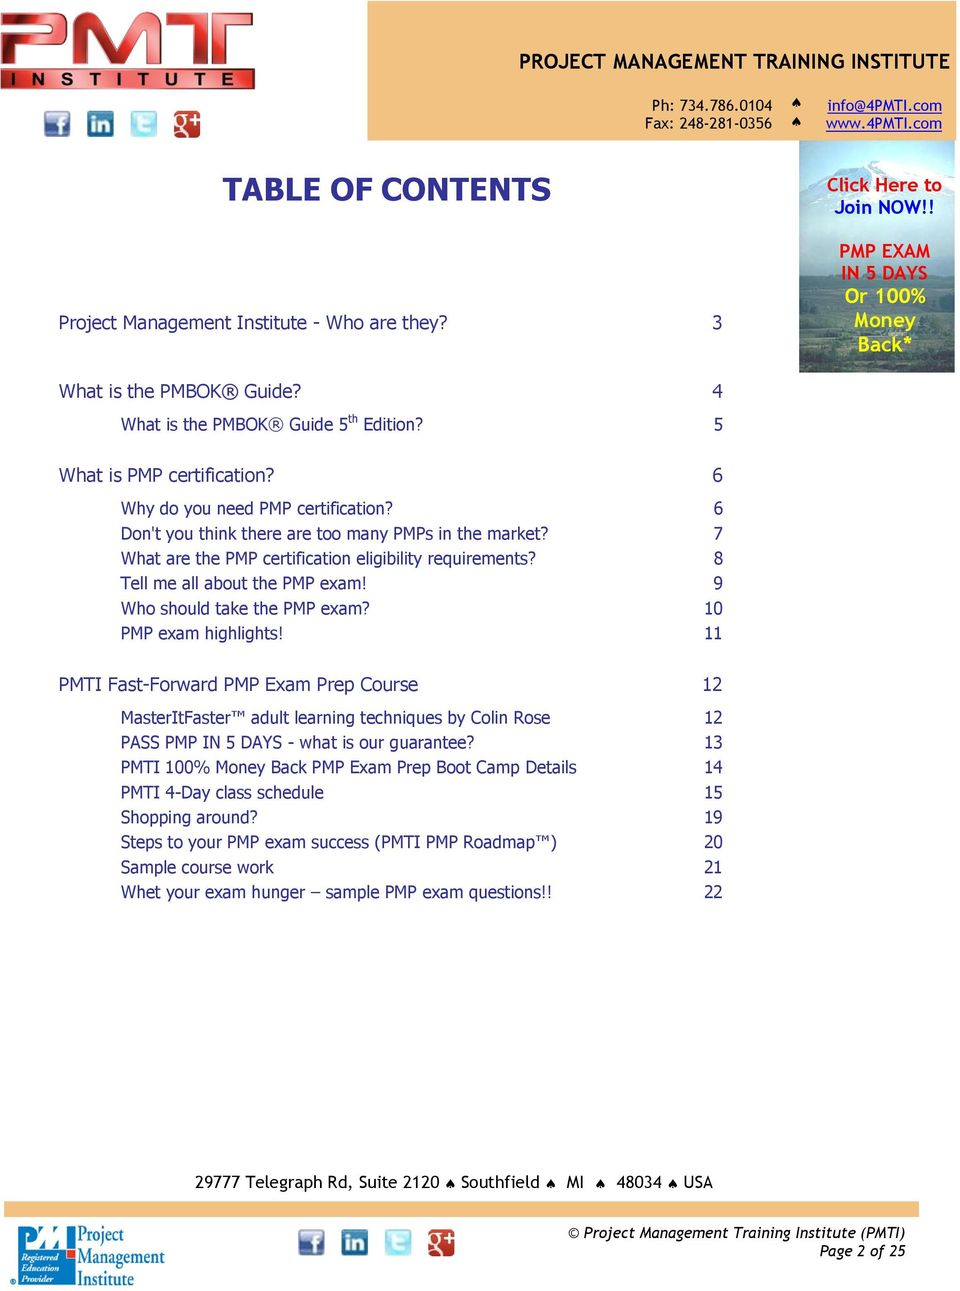 Pmti fast forward pmp exam prep free student infopac pdf 9 who should take the pmp exam 10 pmp exam highlights 11 pmti fast 1betcityfo Image collections